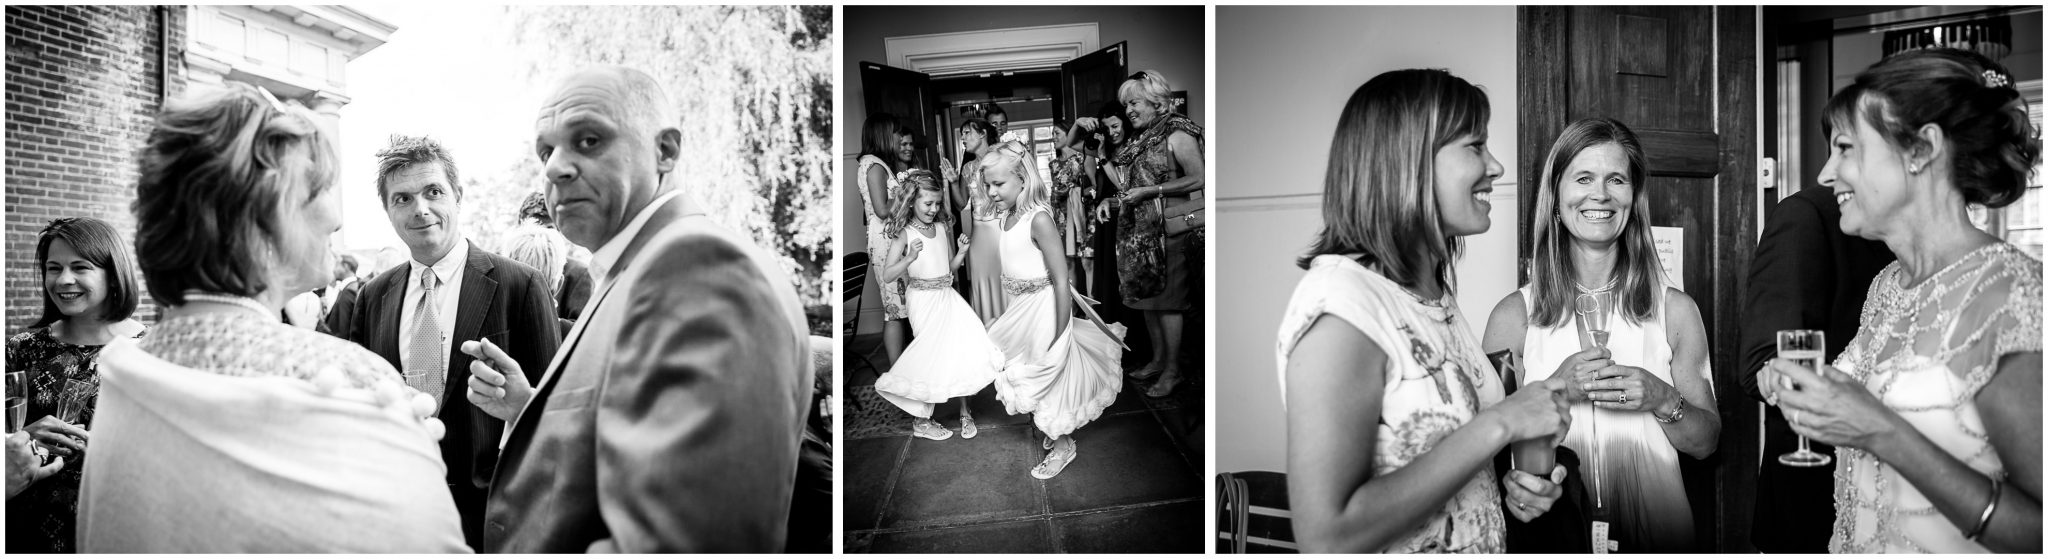 Black and white candid photography of guests at reception